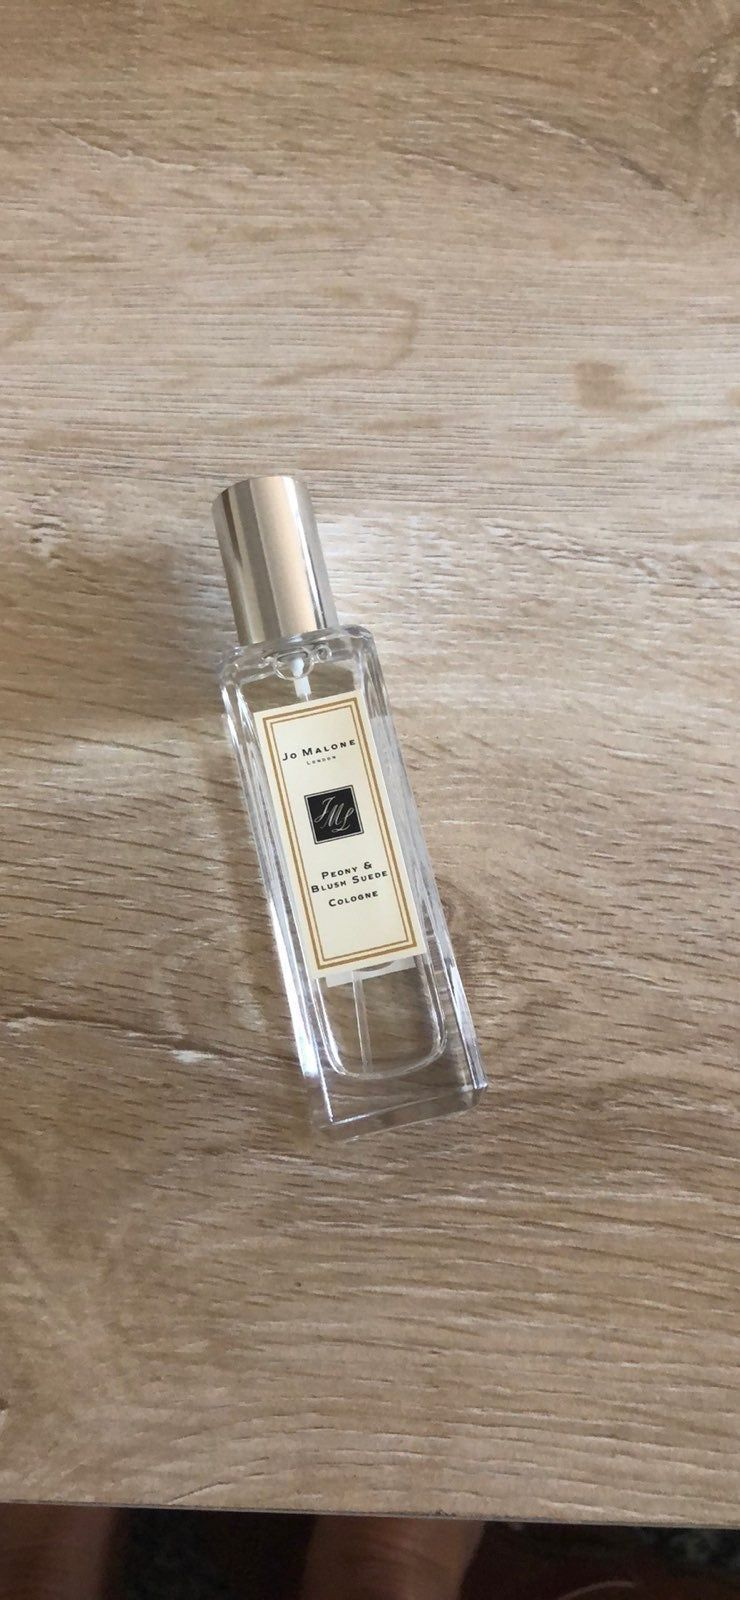 1 Oz Bottle Of Jo Malone Peony And Blush Suede Cologne Only Spritzed Once Box Not Included Currently Retails For 70 Jo Malone Peony